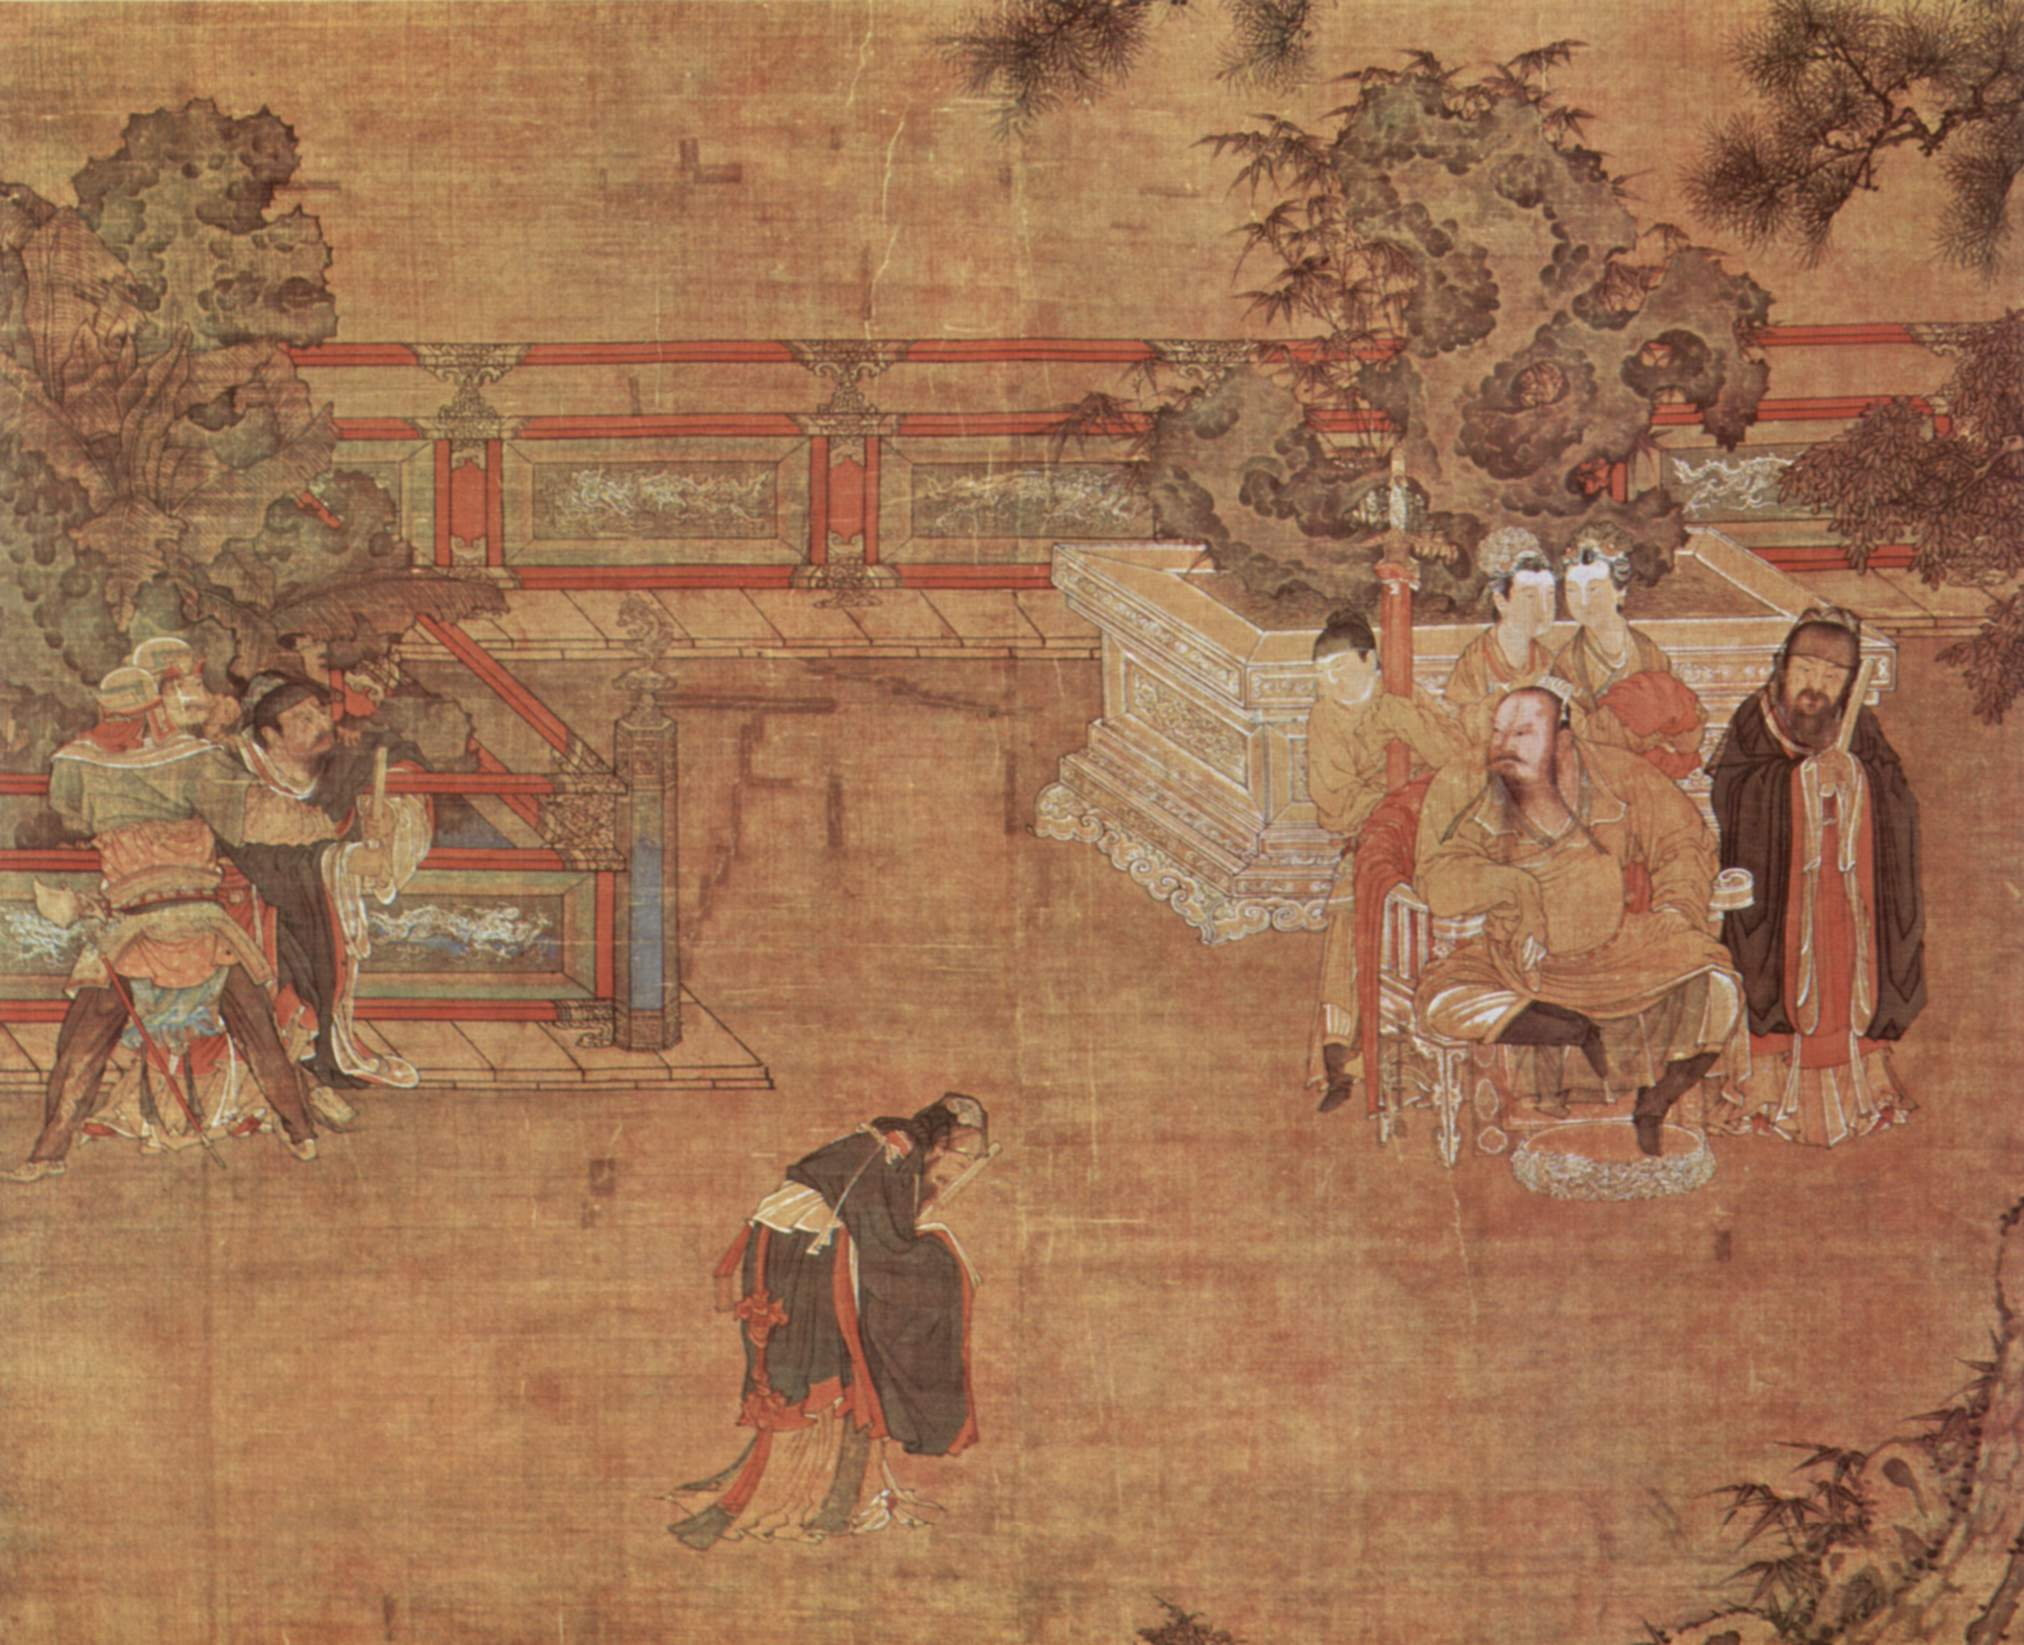 a history of the song dynasty in china The song dynasty (chinese: 宋朝 pinyin: sòng cháo 960–1279) of china was a  ruling dynasty that controlled china proper and southern china from the middle.